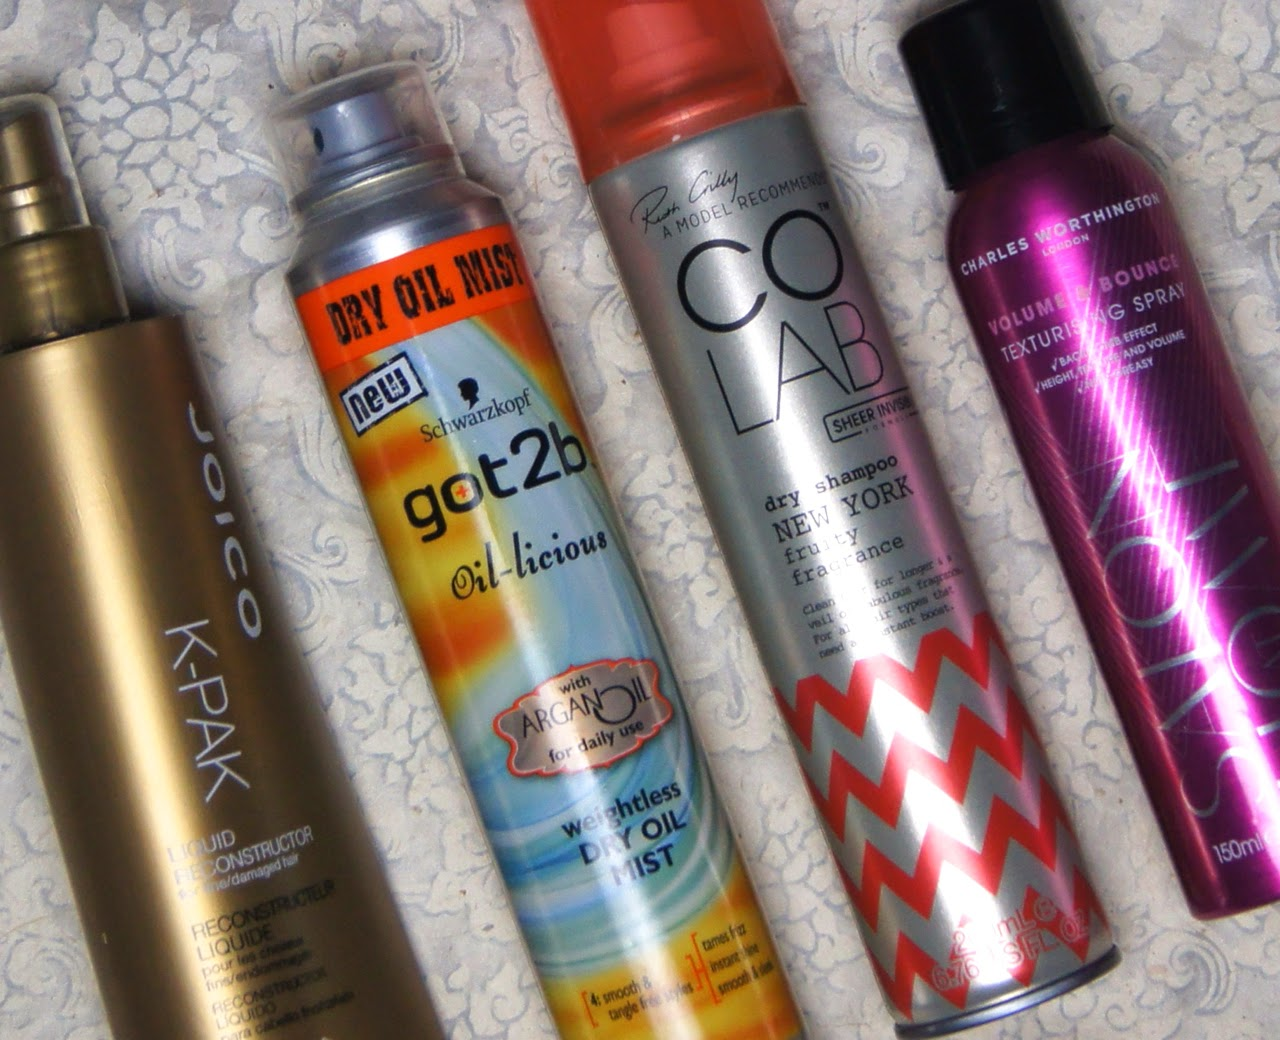 2014 haircare favourites leave-in conditioner dry shampoo texturizing spray dry oil mist